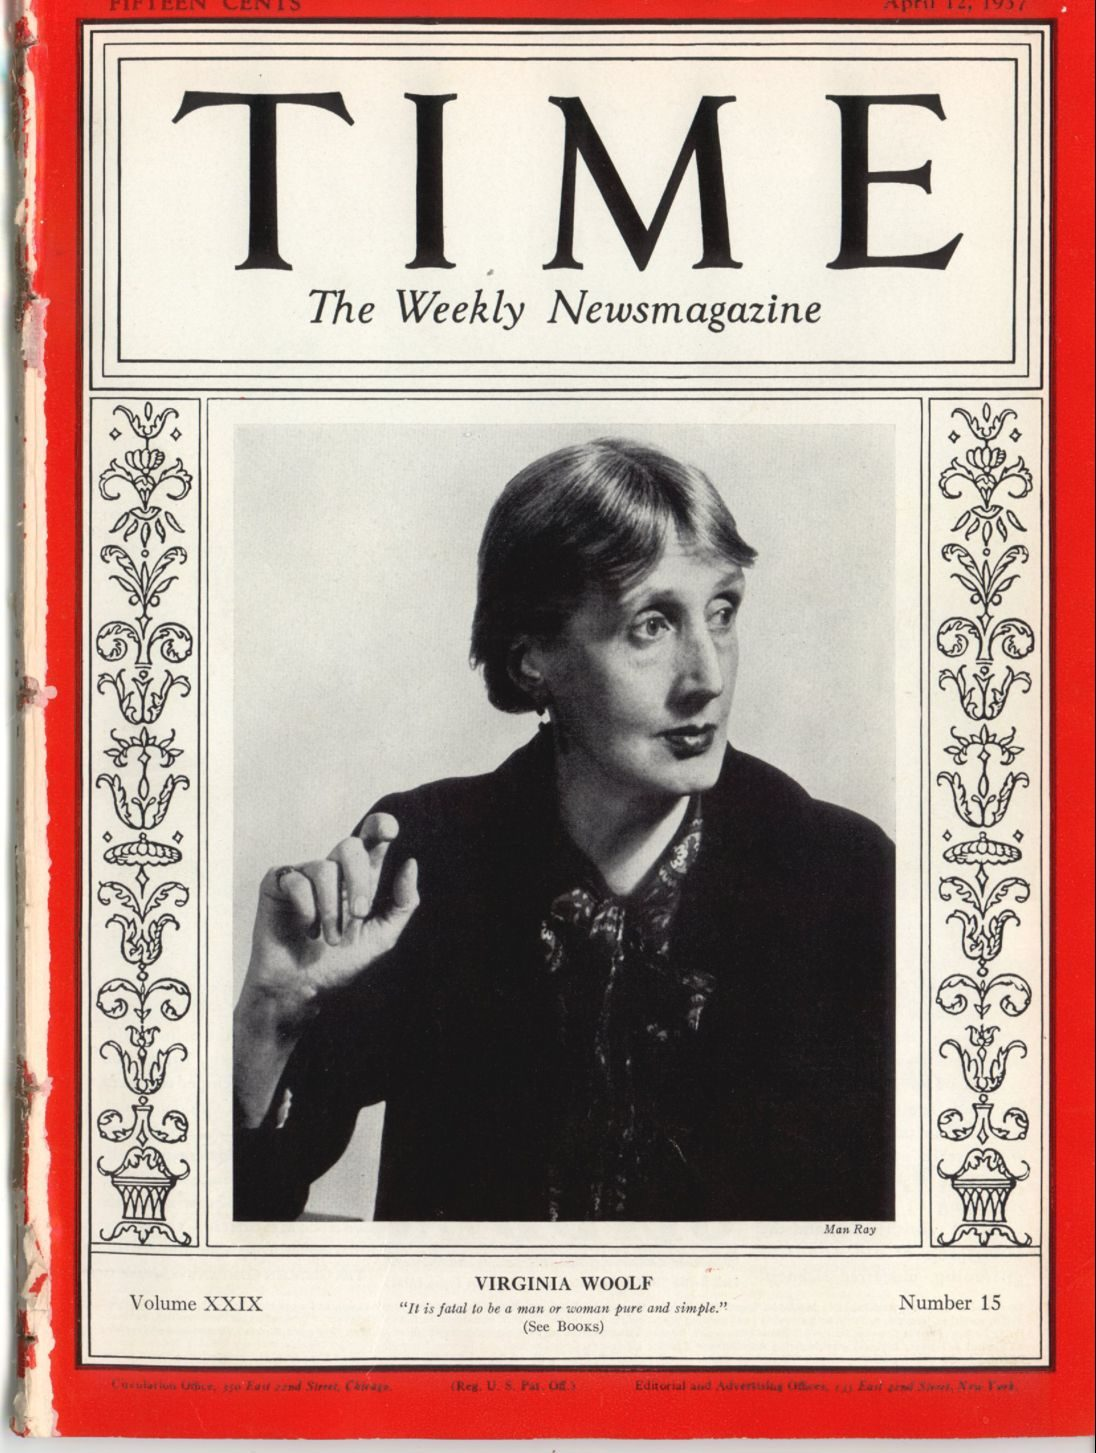 Virginia Woolf on the cover of TIME's April 12, 1937 issue